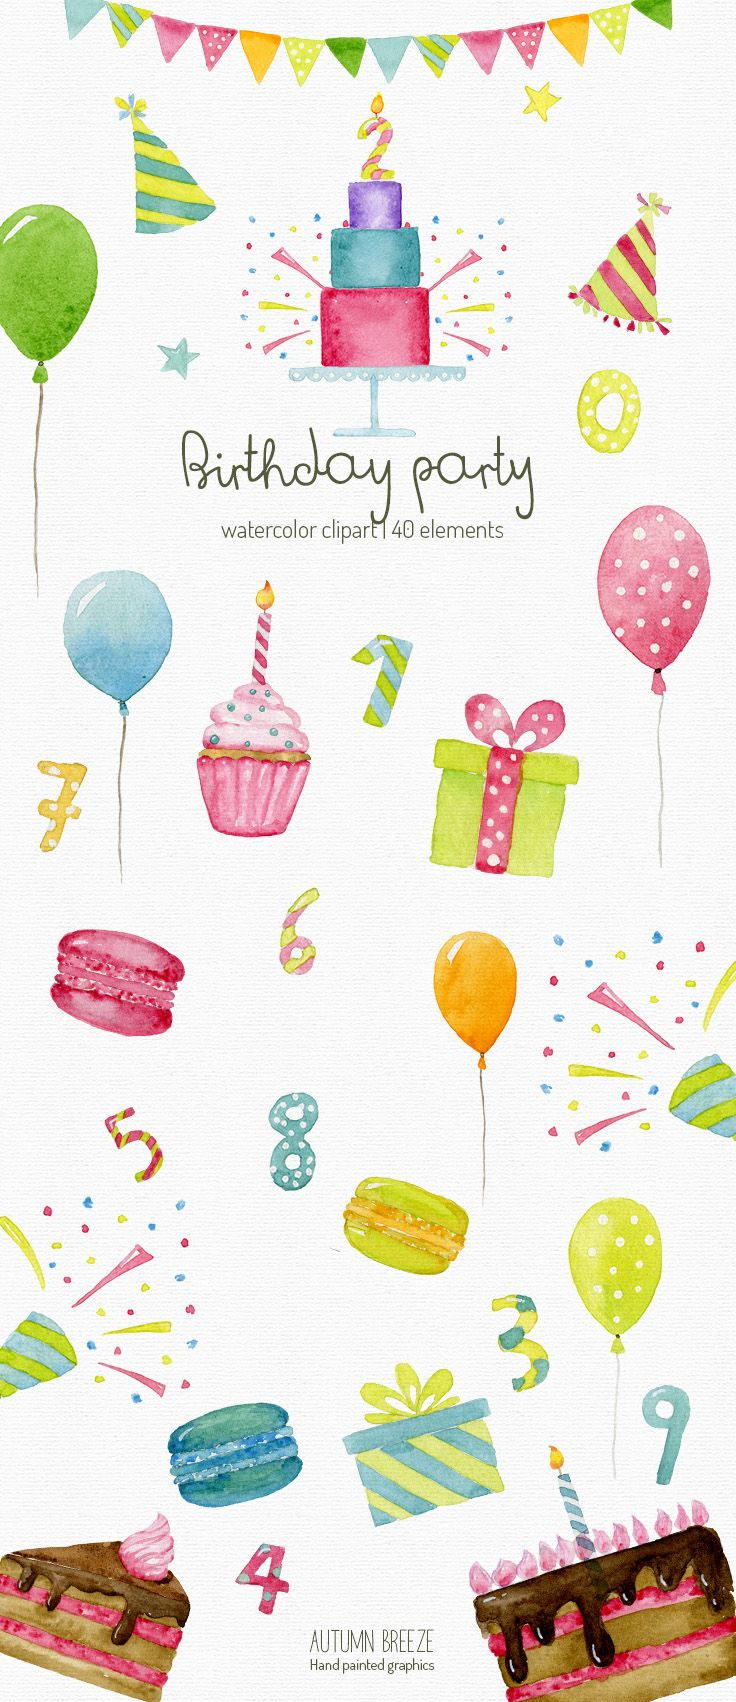 Watercolor birthday clipart, anniversary clipart, party.